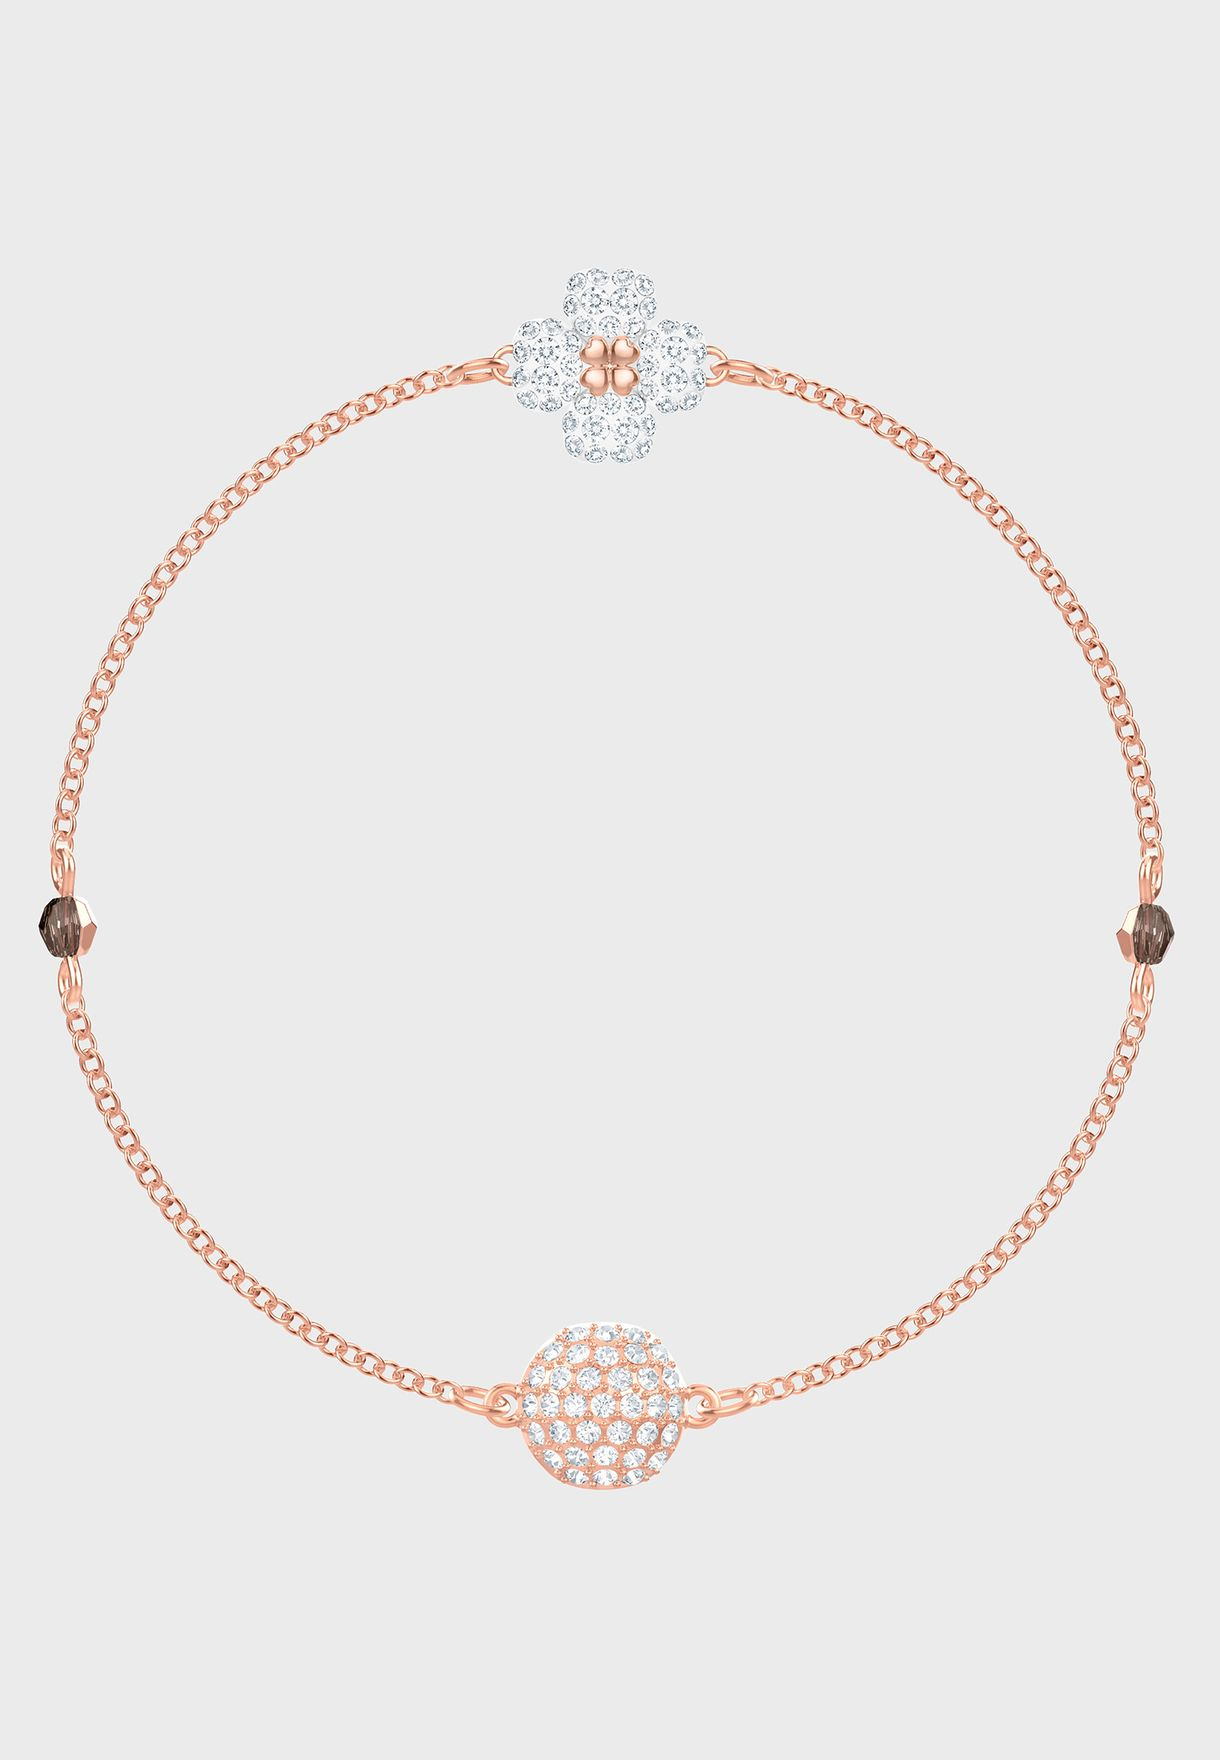 cbaaf8765 Shop Swarovski rosegold Swarovski Remix Collection Clover Bracelet 5451088  for Women in UAE - 14448AC57HEP